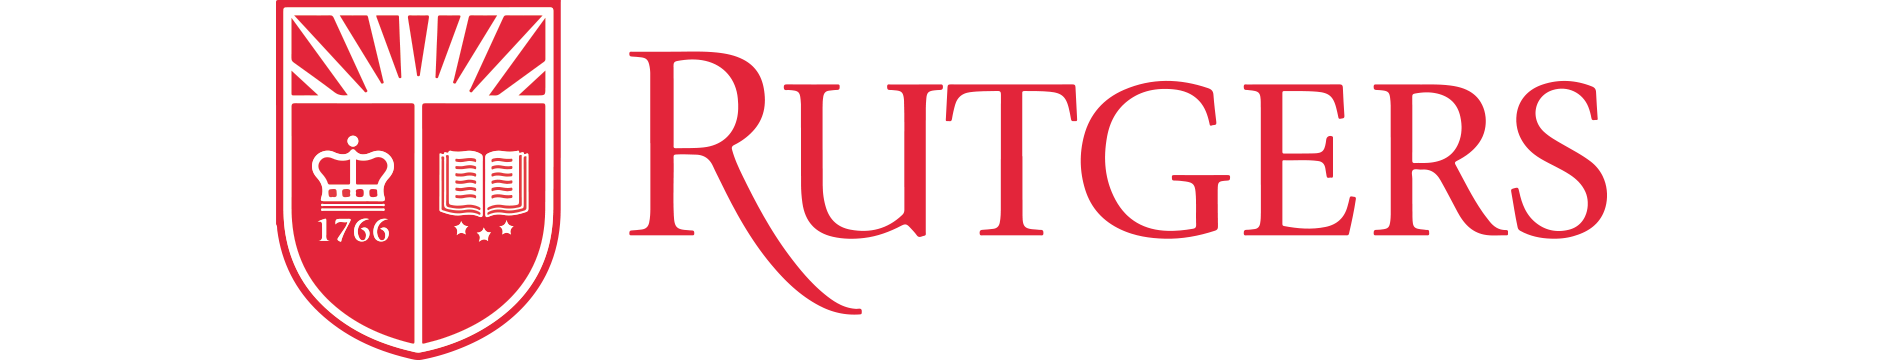 Safety Client - Rutgers University